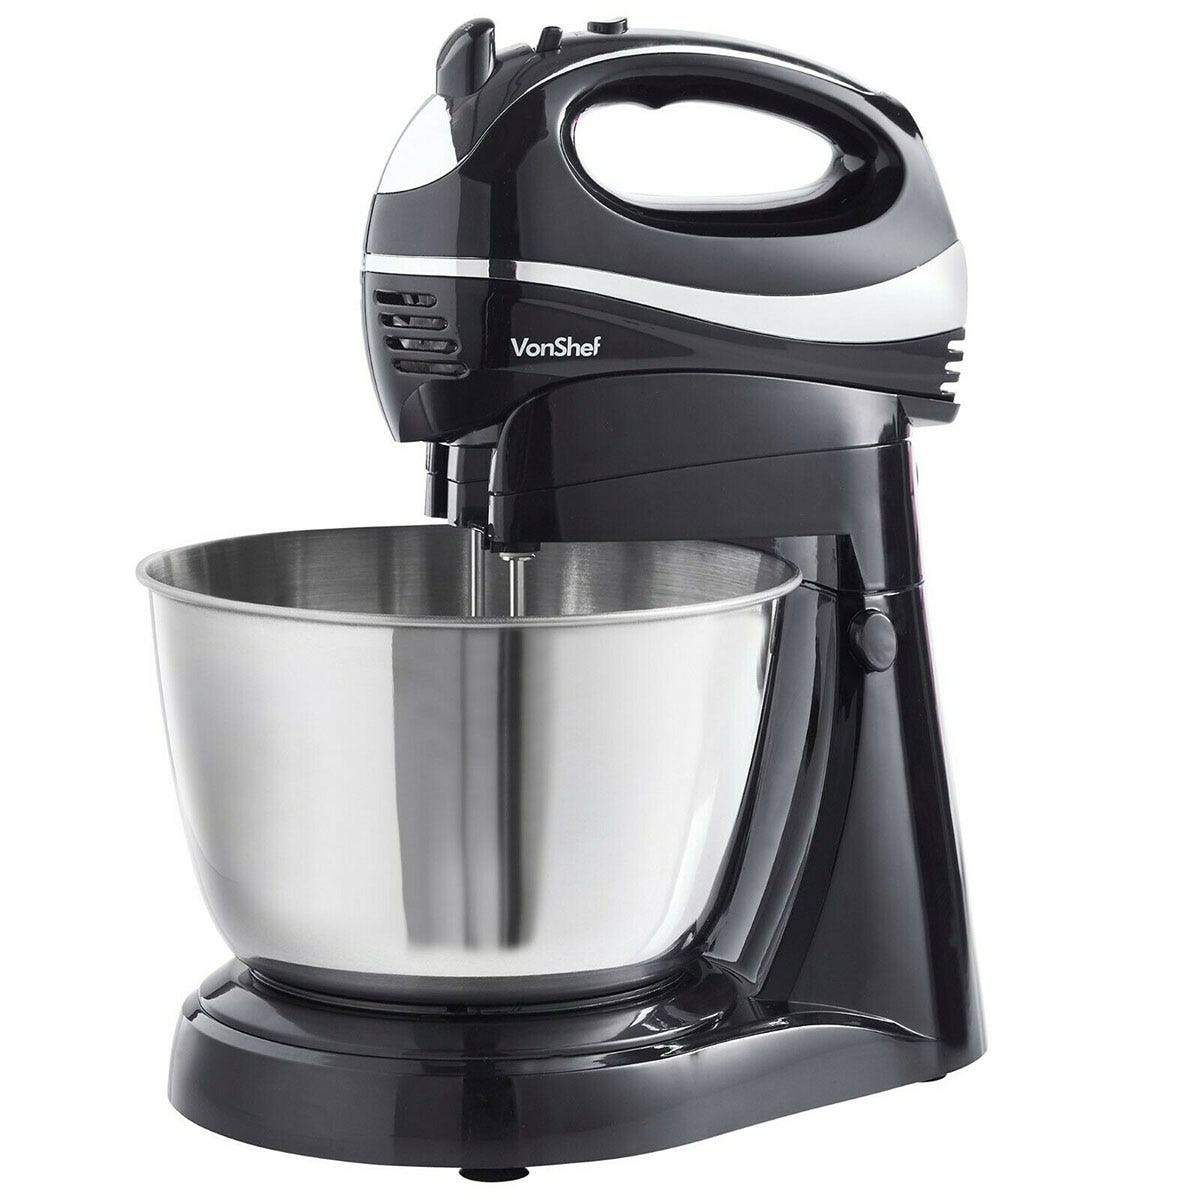 VonShef 15337RG Hand Stand Mixer with Hand Whisk Stand - Black